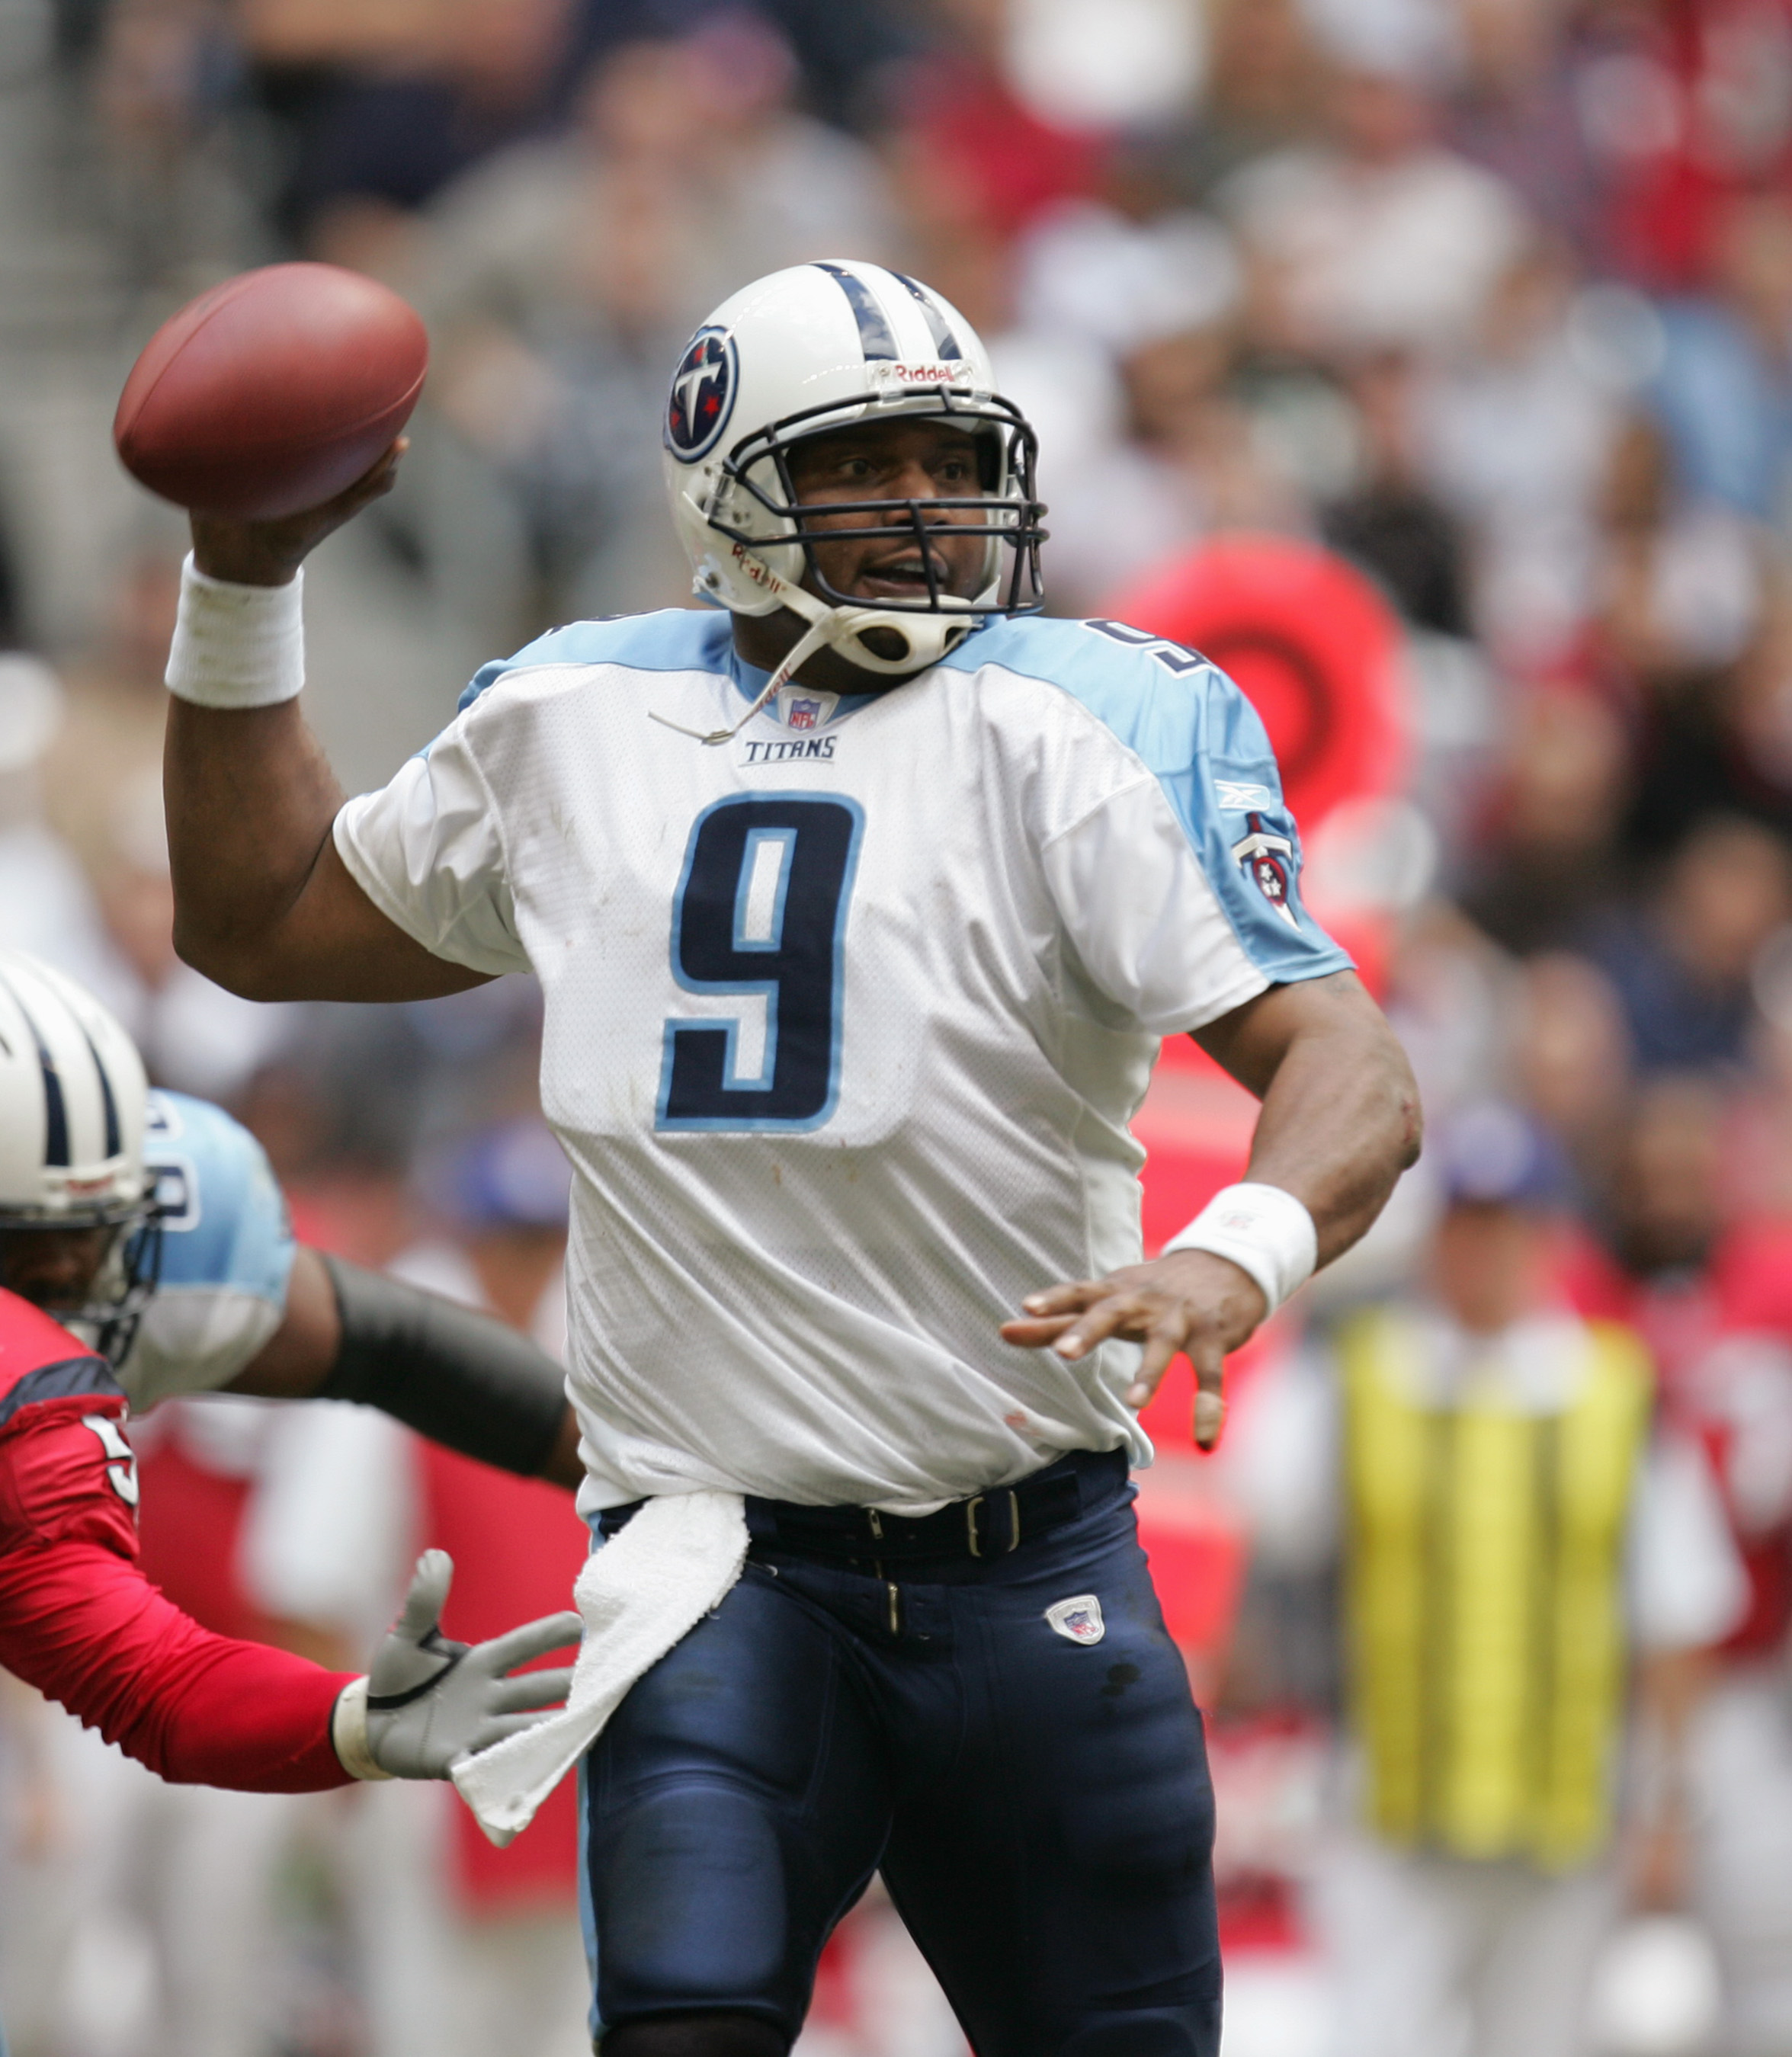 HOUSTON - NOVEMBER 28:  Quarterback Steve McNair #9 of the Tennessee Titans sets to pass during the game against the Houston Texans on November 28, 2004 at Reliant Stadium in Houston, Texas. The Texans defeated the Titans 31-21. (Photo by Ronald Martinez/